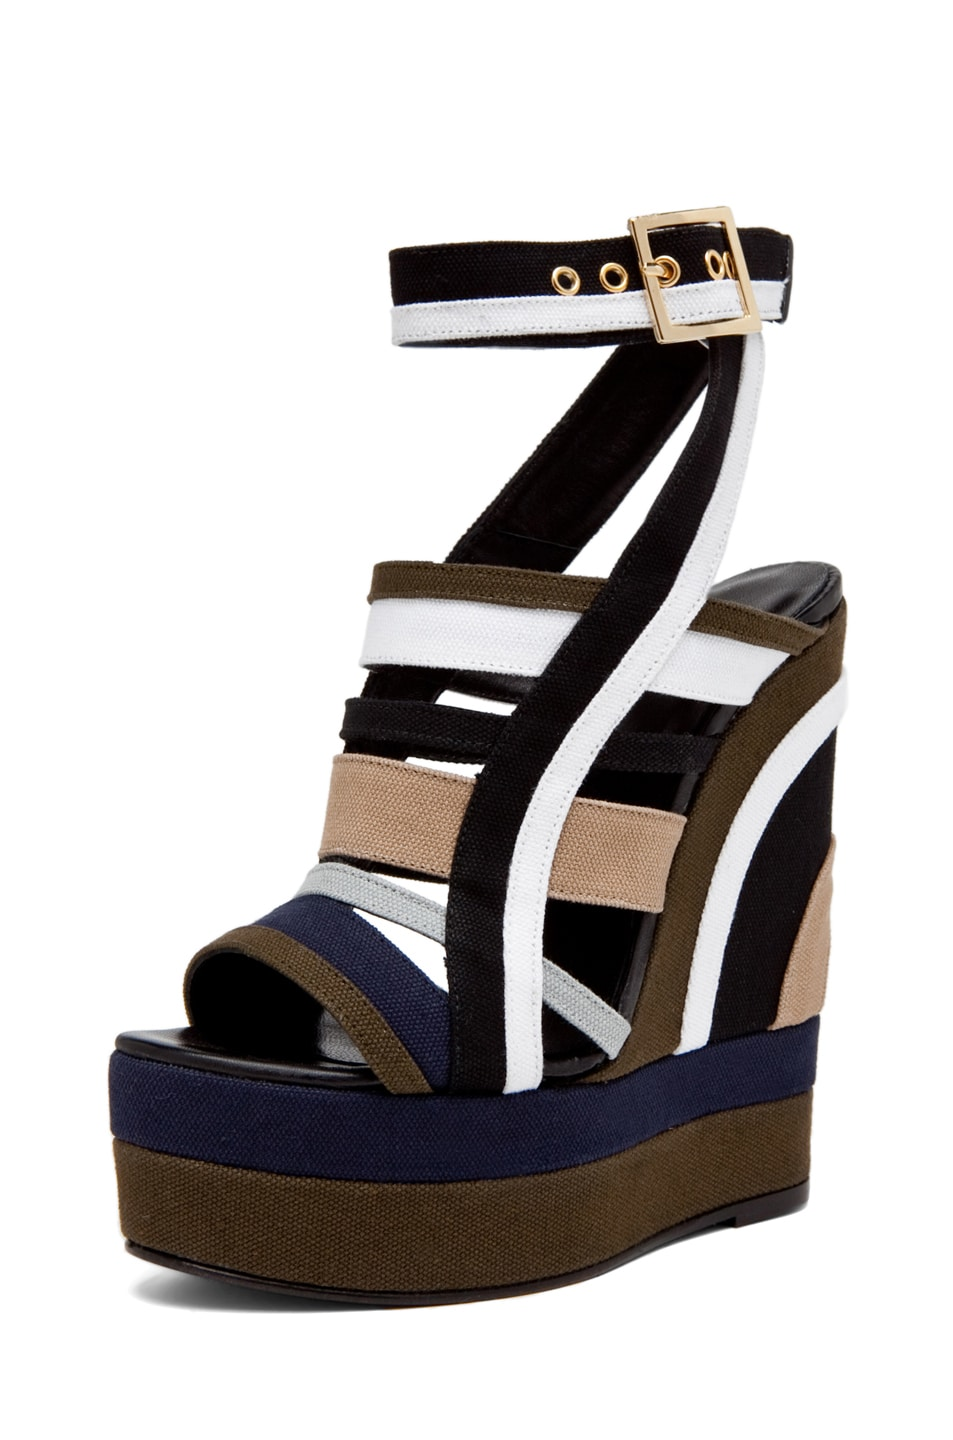 Image 1 of Pierre Hardy Canvas Multi Colored Wedge in Multi Kaki